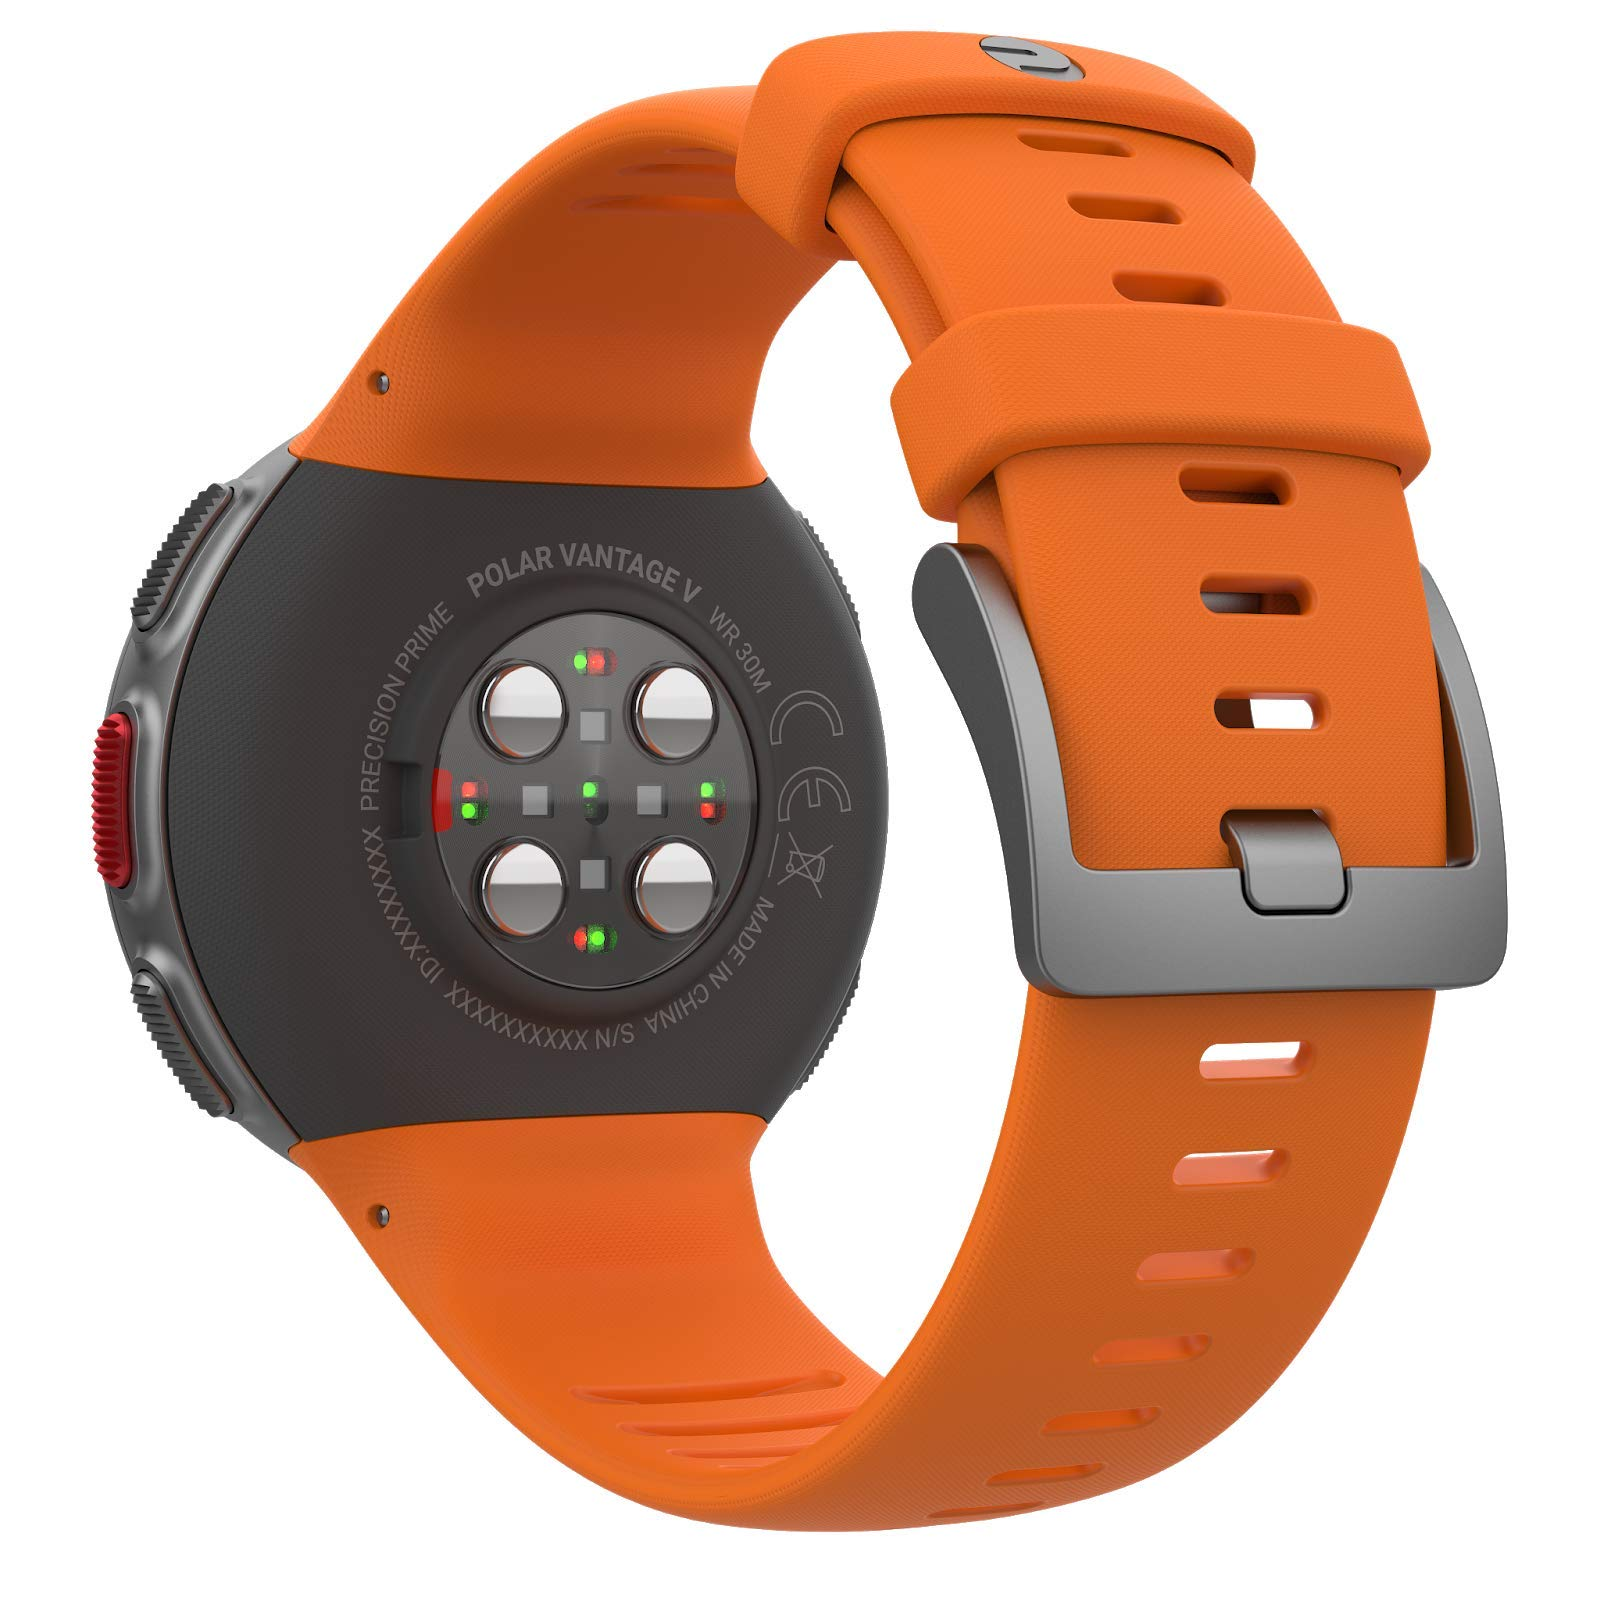 PlayBetter Polar Vantage V Pro Multisport Watch (Orange) Power Bundle Portable Charger & Screen Protectors | GPS & Barometer | Heart Rate by PlayBetter (Image #5)